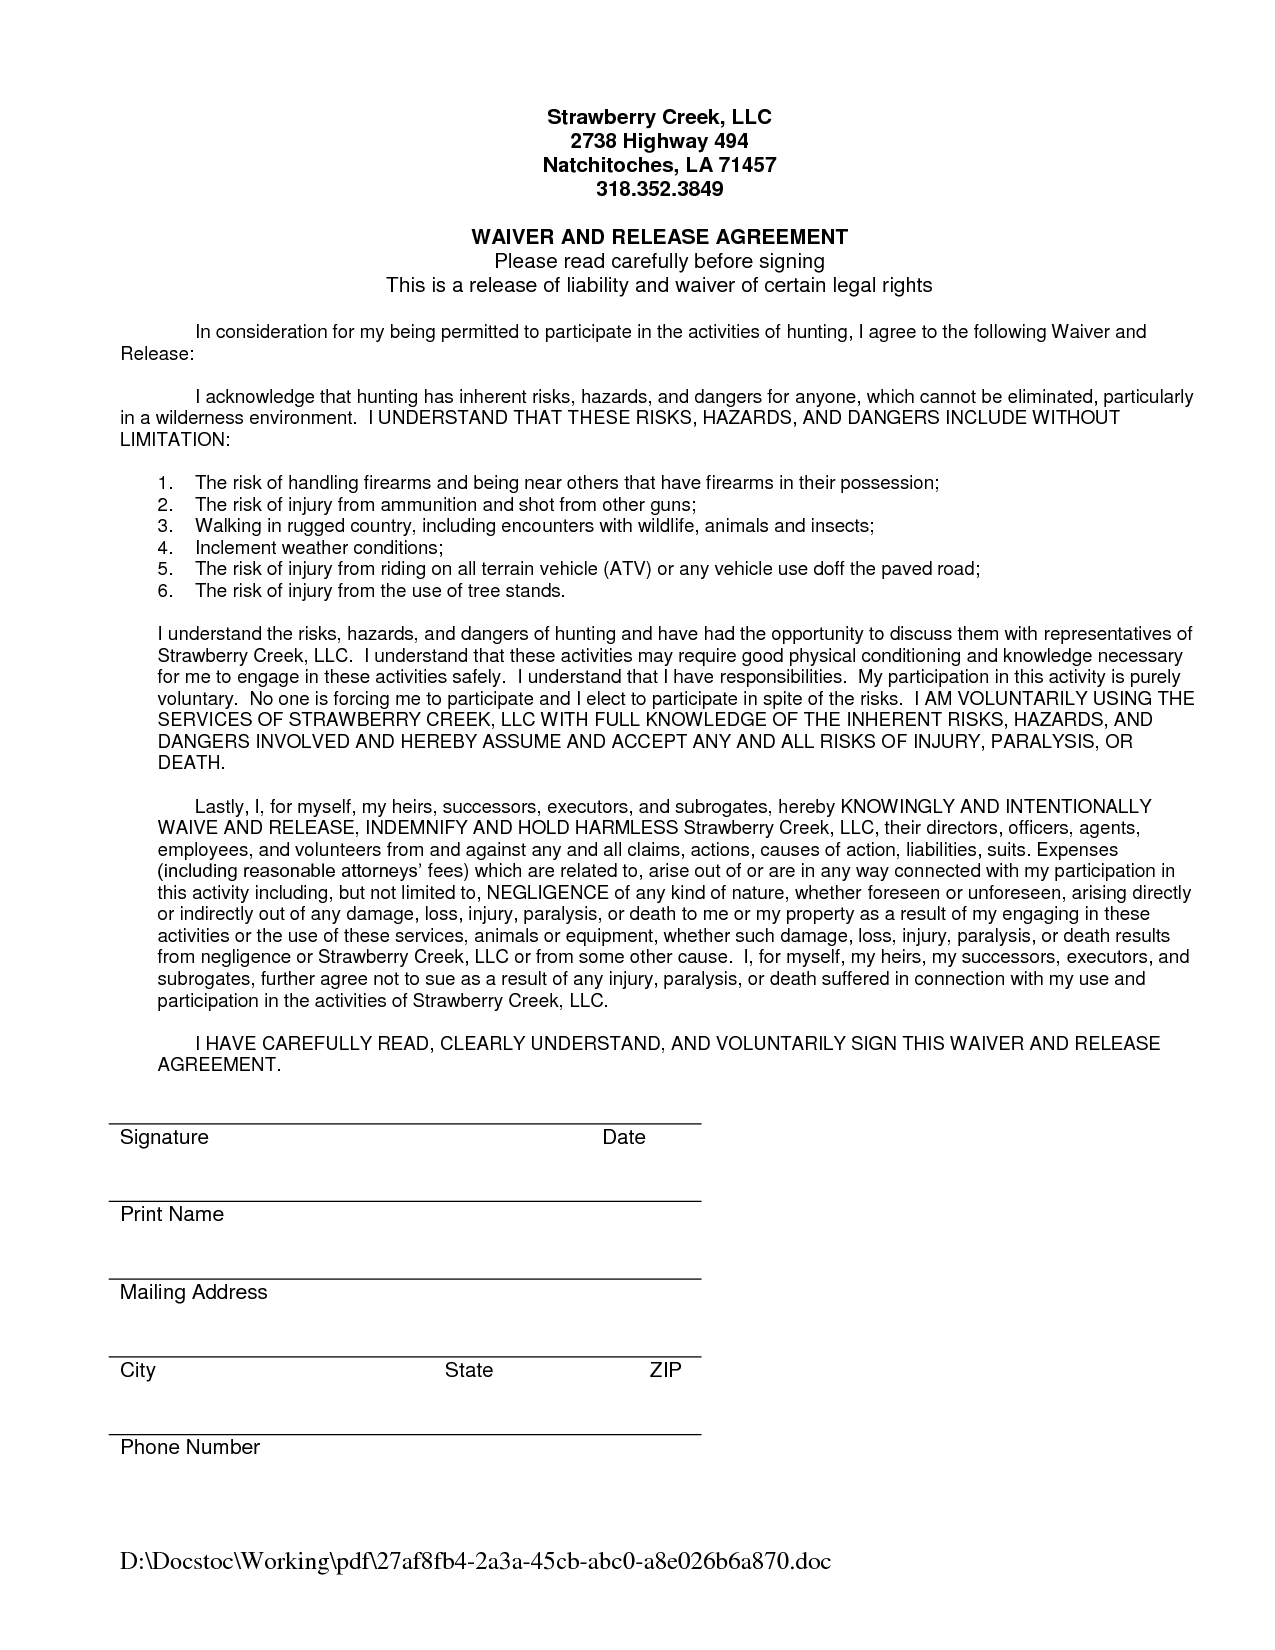 Waiver Of Liability Sample - Free Printable Documents | Waiver - Free Printable Documents